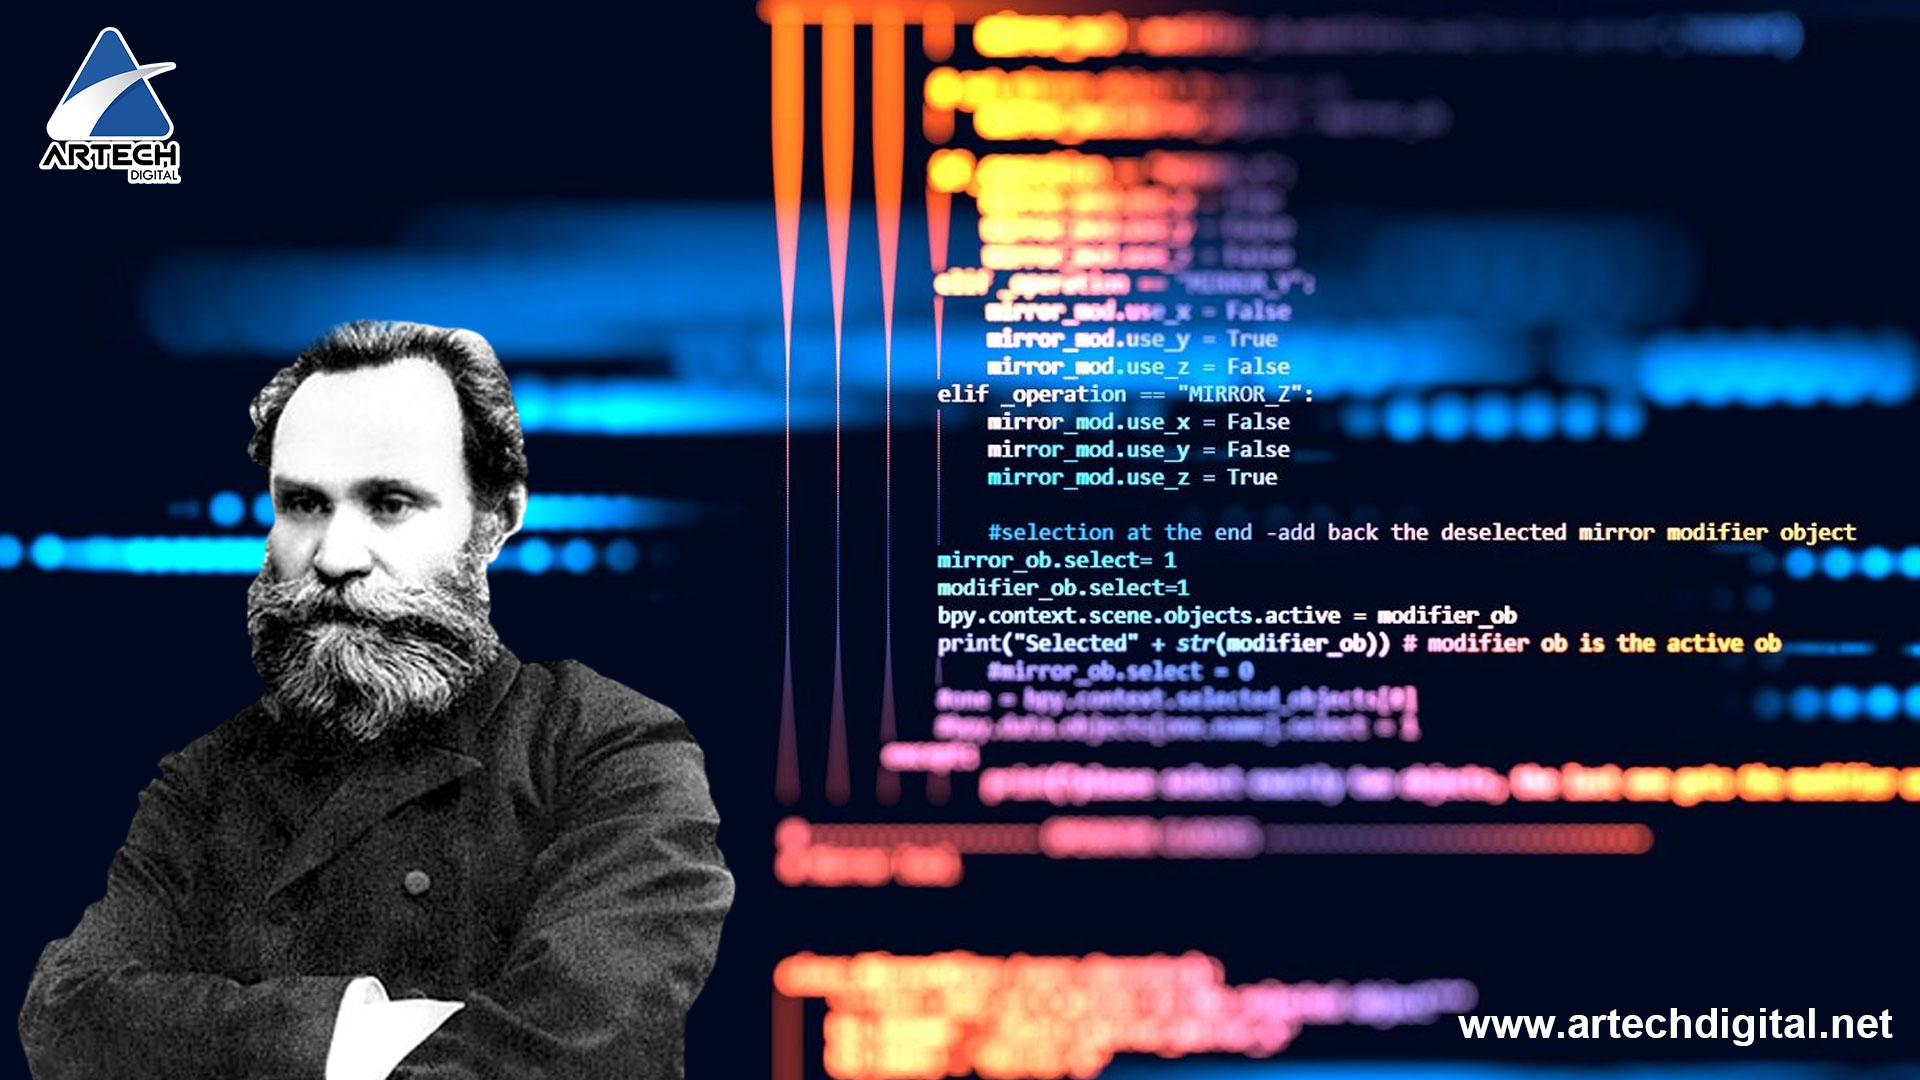 Discover how the Ivan Pavlov-inspired algorithm works